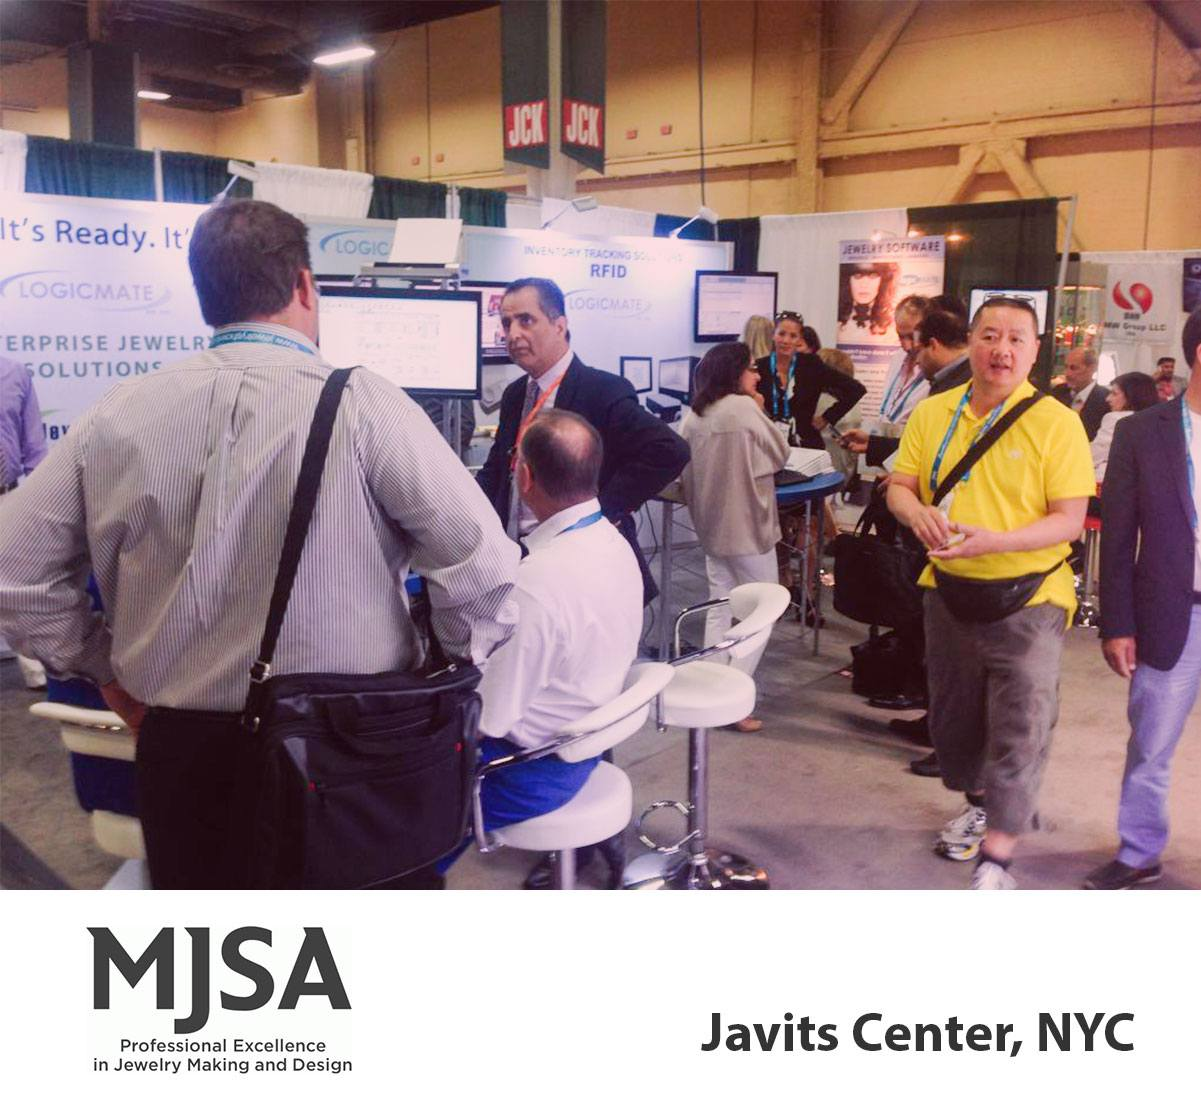 1-jewelmate-event-mjsa-expo-nyc